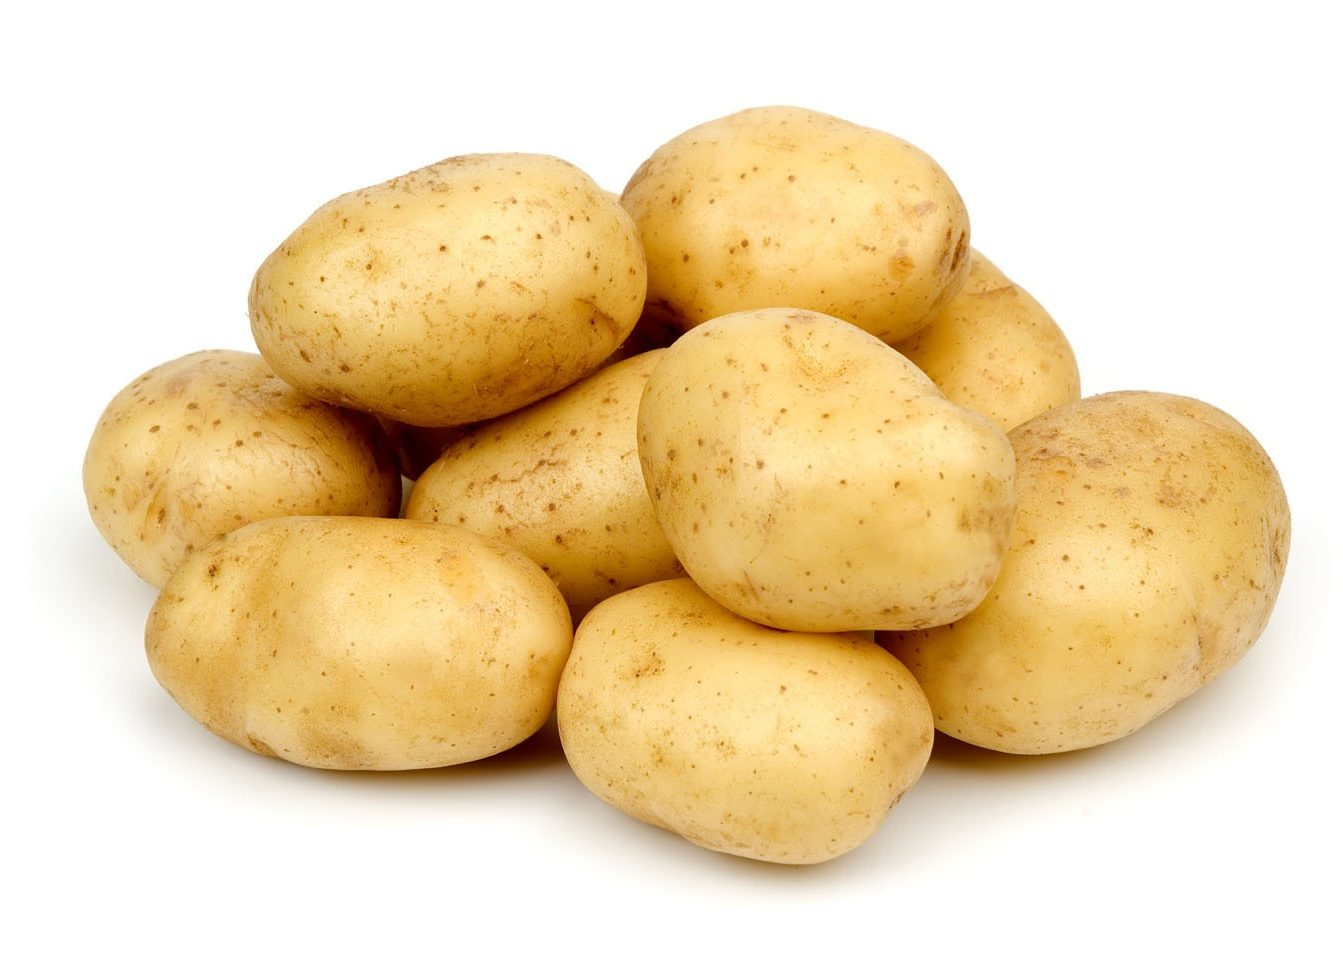 potatoes and diabetes